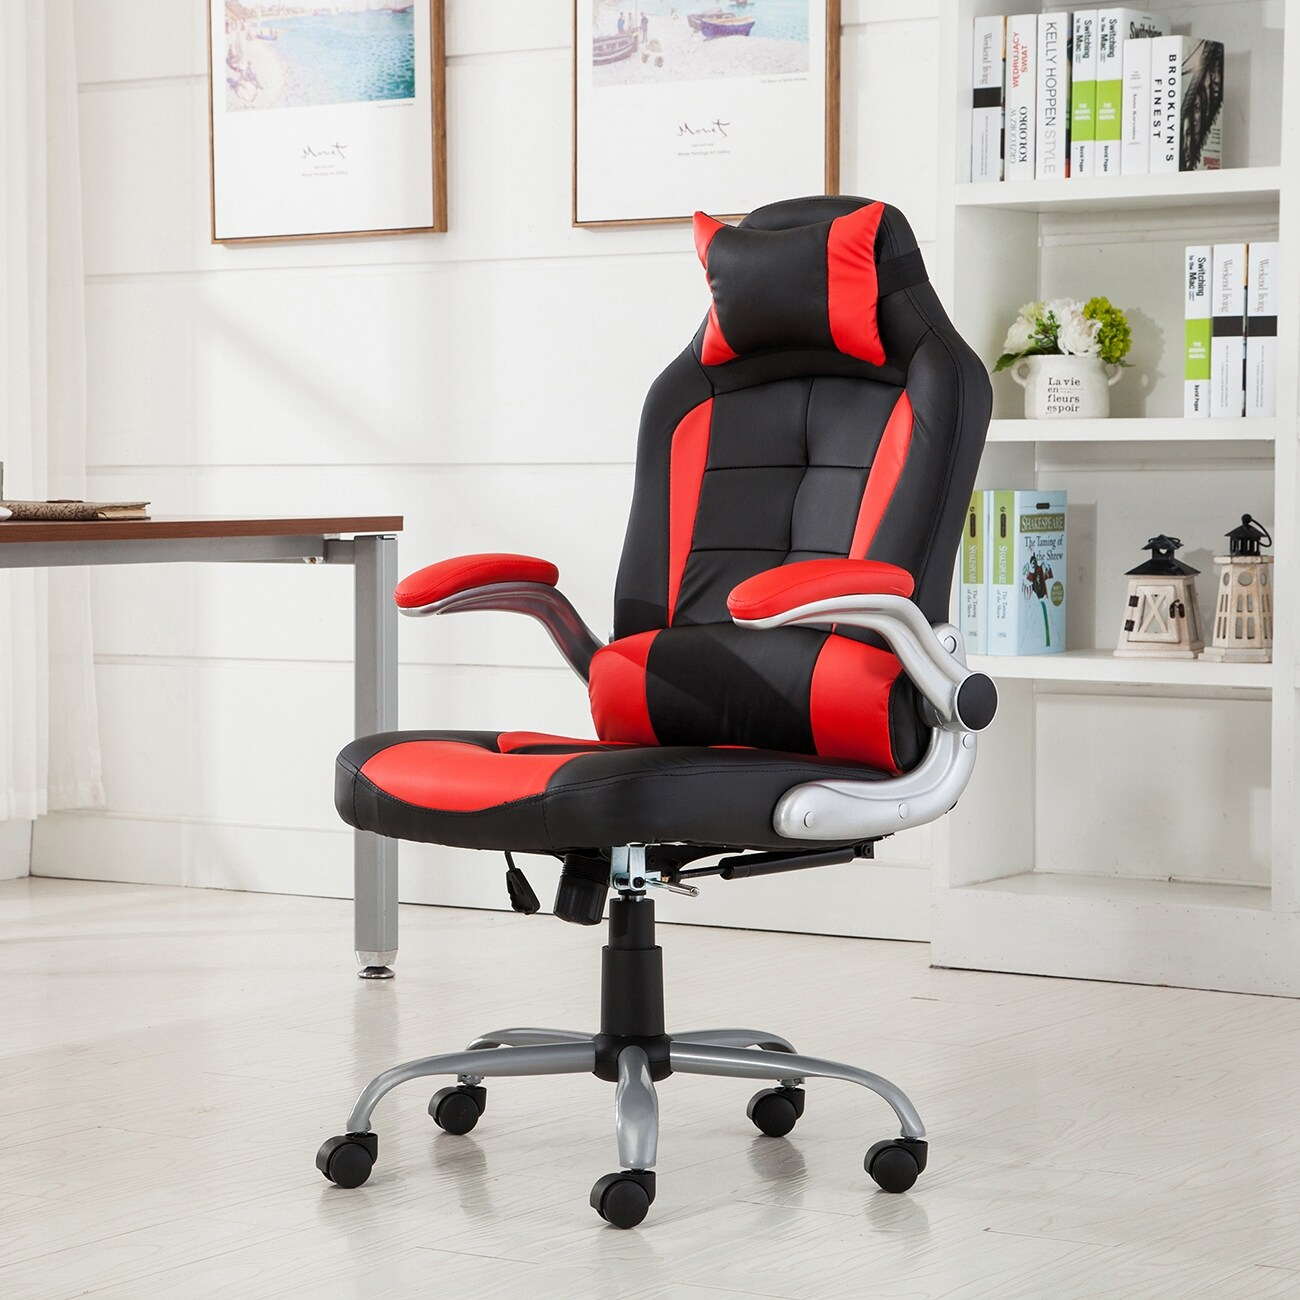 Belleze High Back Ergonomic Office Chair Recline Racing Style Computer Desk Lumbar Support Red And Black Free Shipping Today